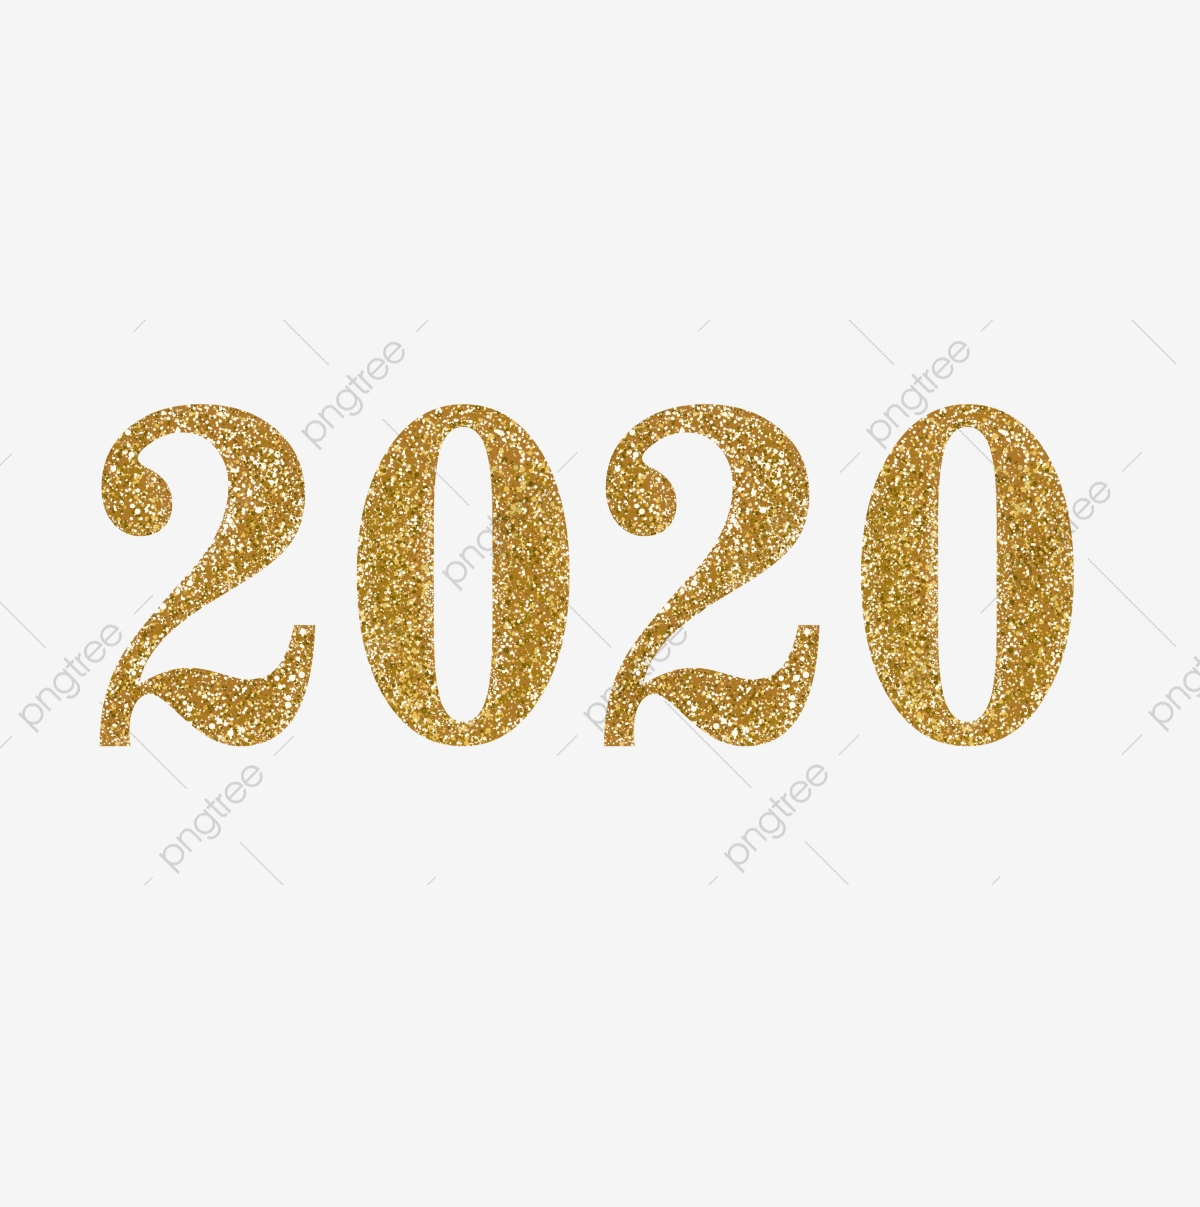 Gold Glitter 2020 Png, Glitter, Gold, Golden Png And Vector intended for 2020 Transparent Background